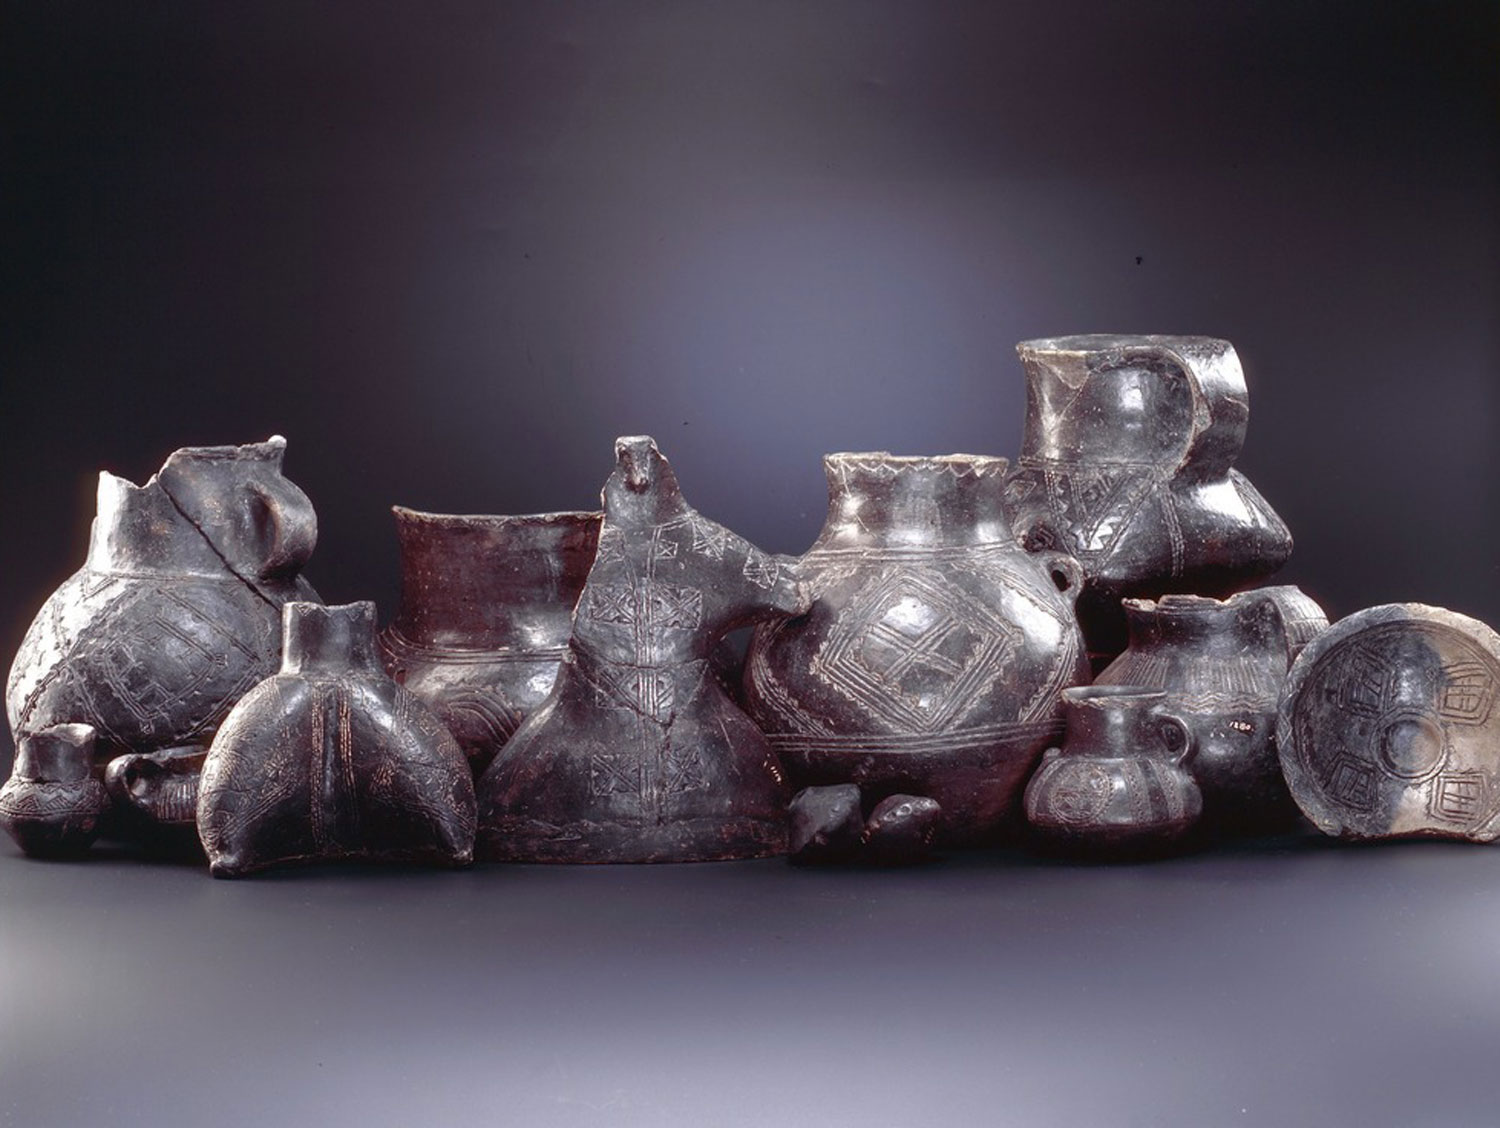 prehistoric urns with decoration made with thread